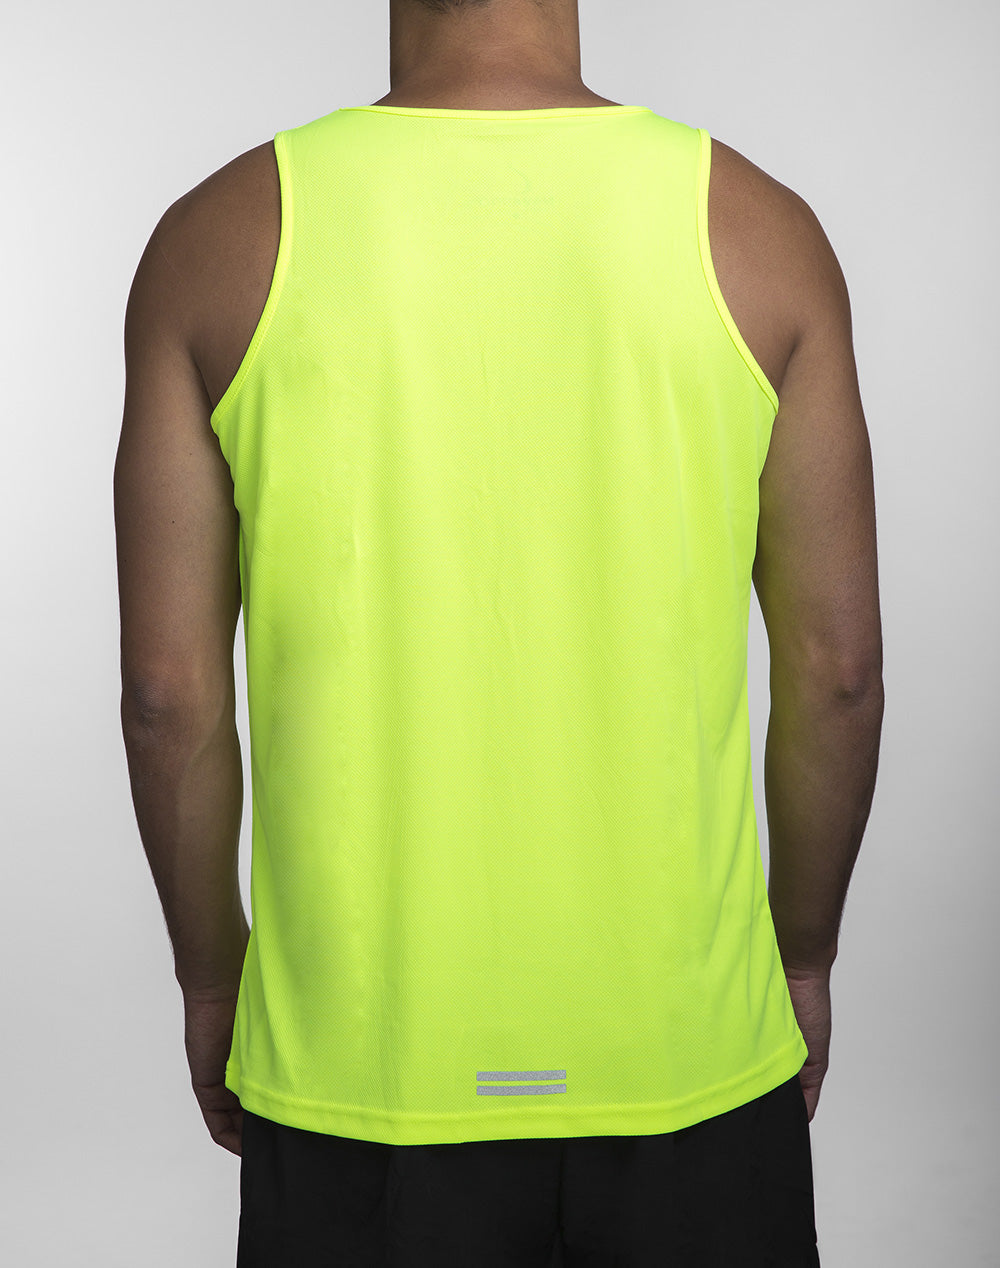 Running Lightweight Tank Top Yellow גופית ריצה